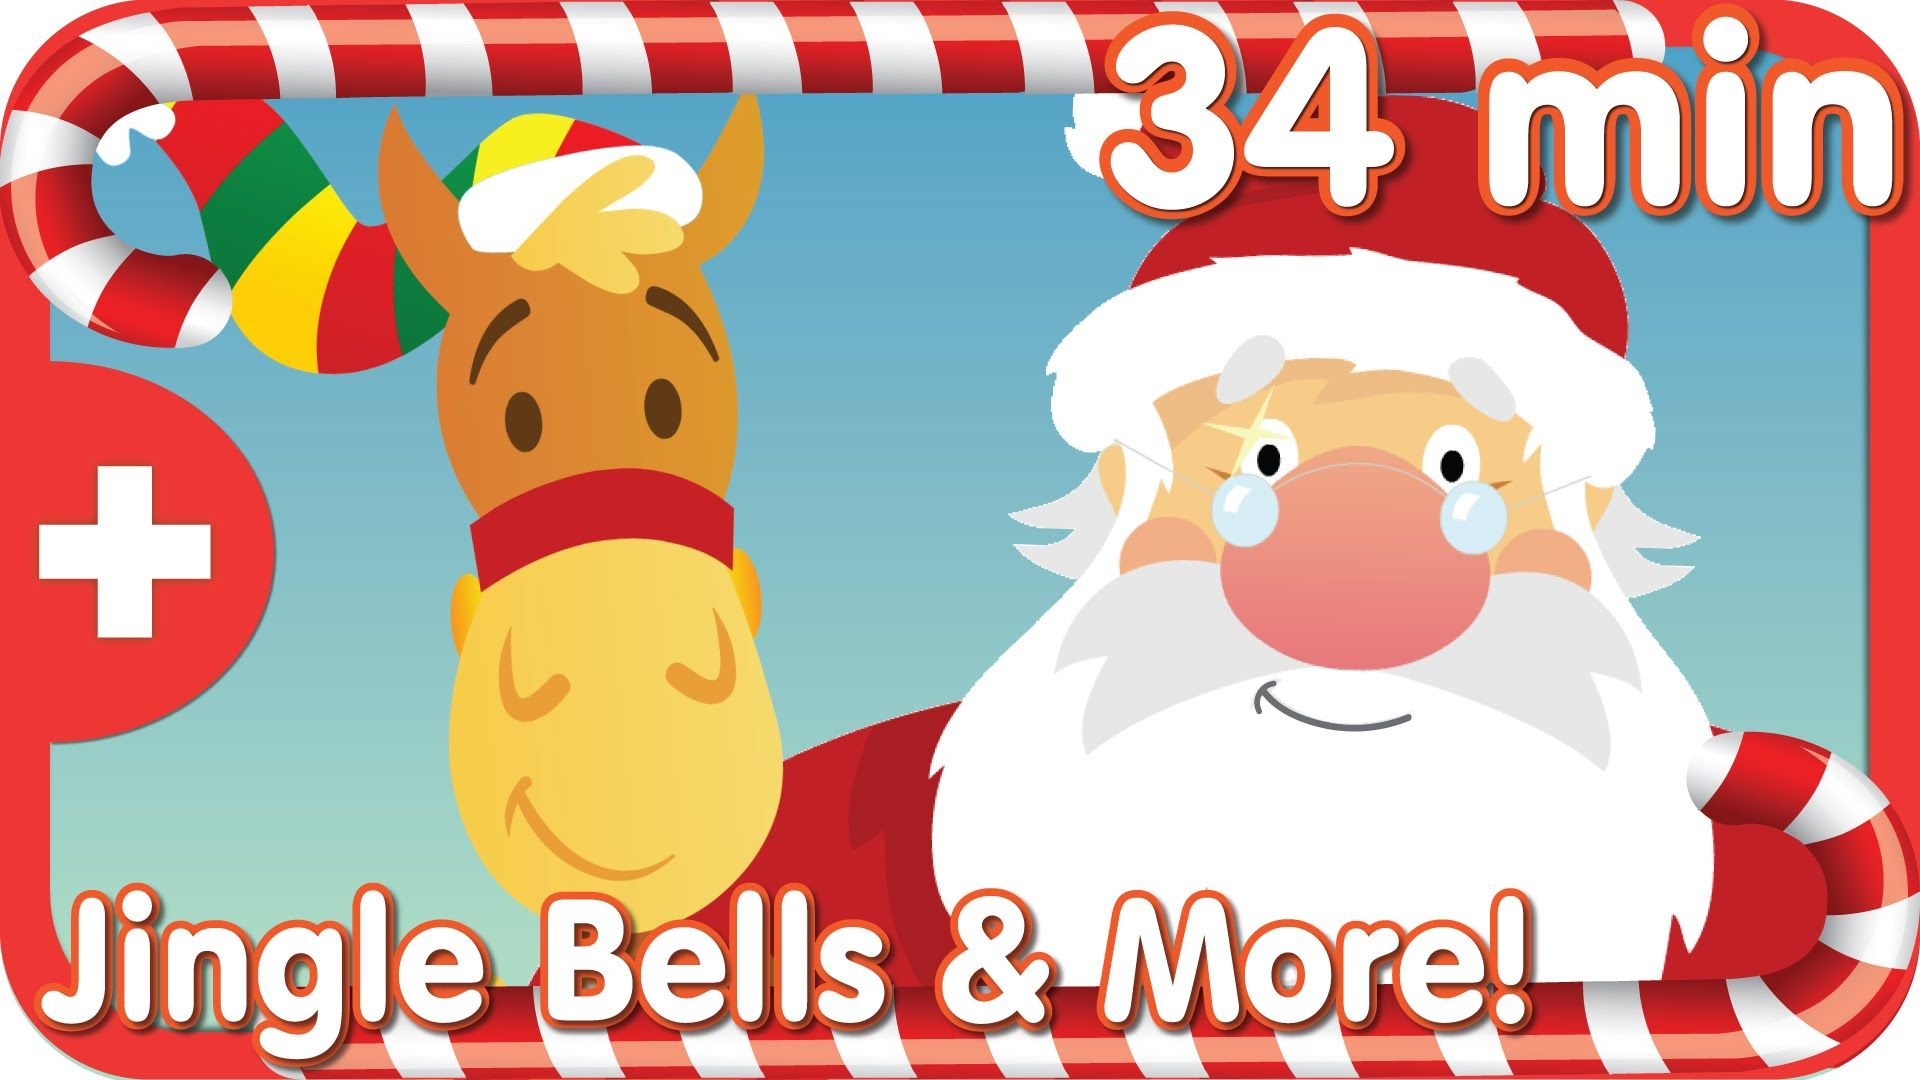 jingle bells video from super simple songs christmas easy call - Super Simple Songs Christmas